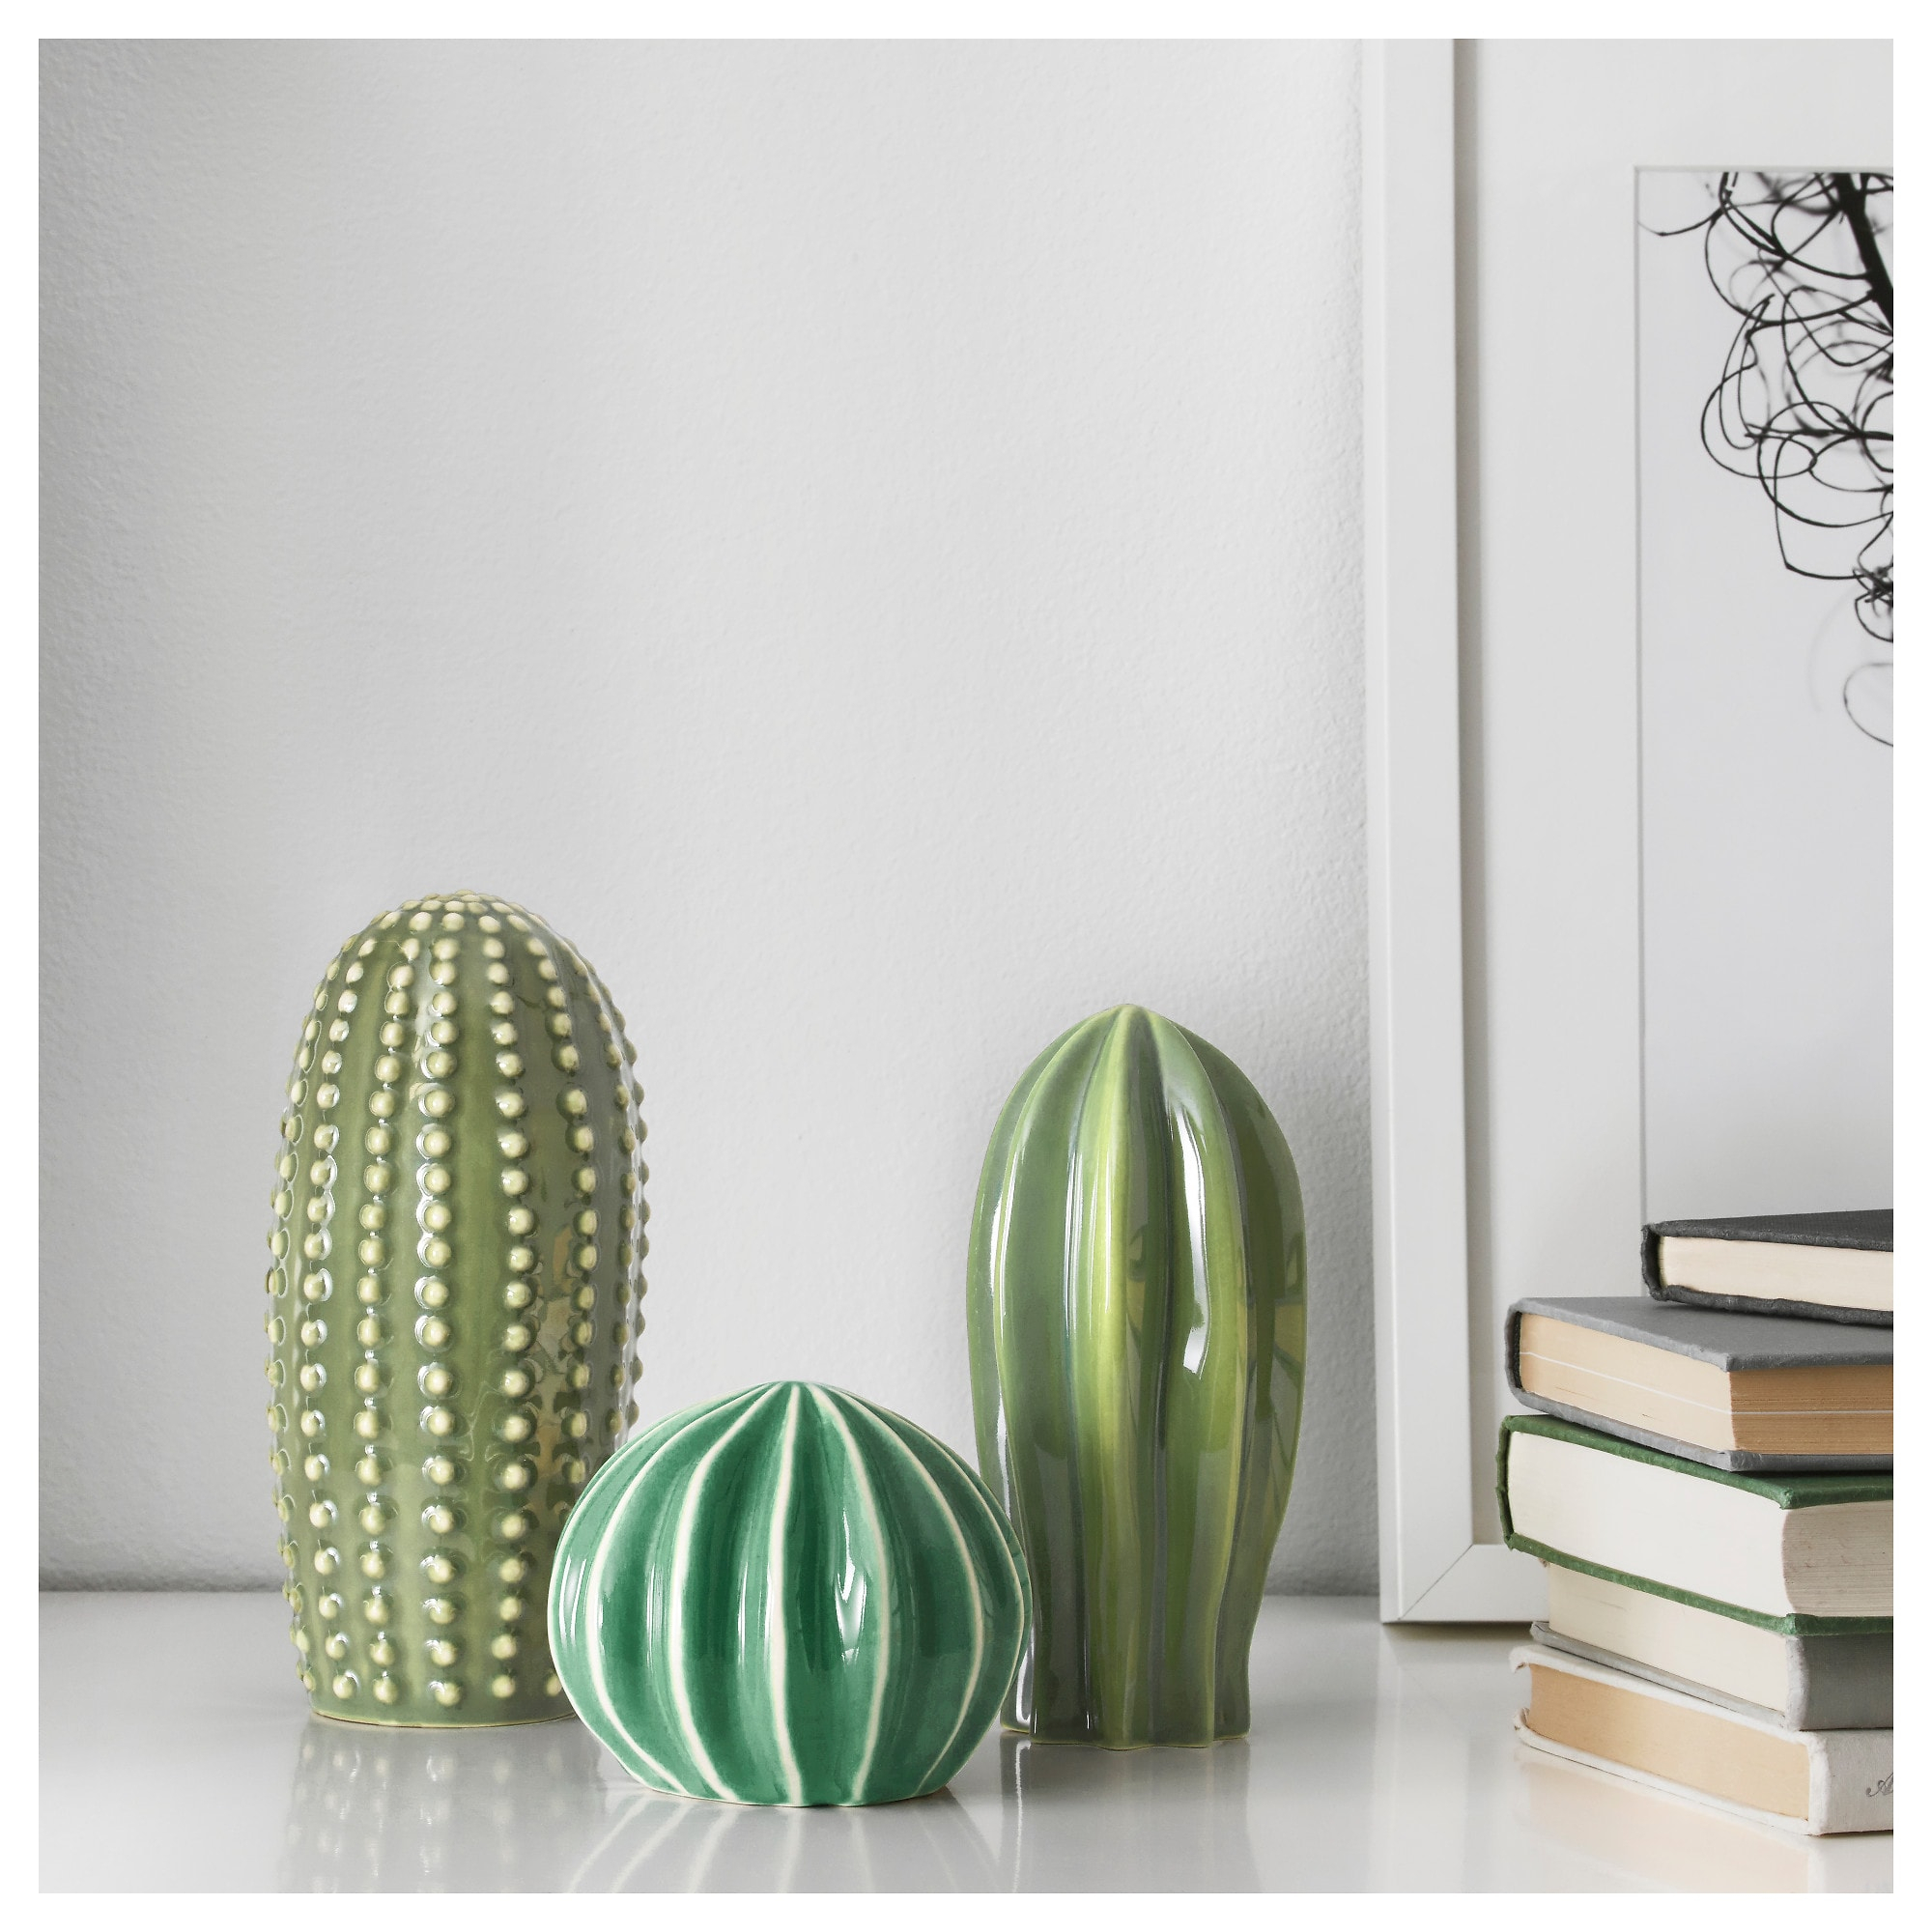 3 Piece Ceramic Flowers Wall Decor Sets throughout Recent Själsligt Decoration, Set Of 3 - Ikea